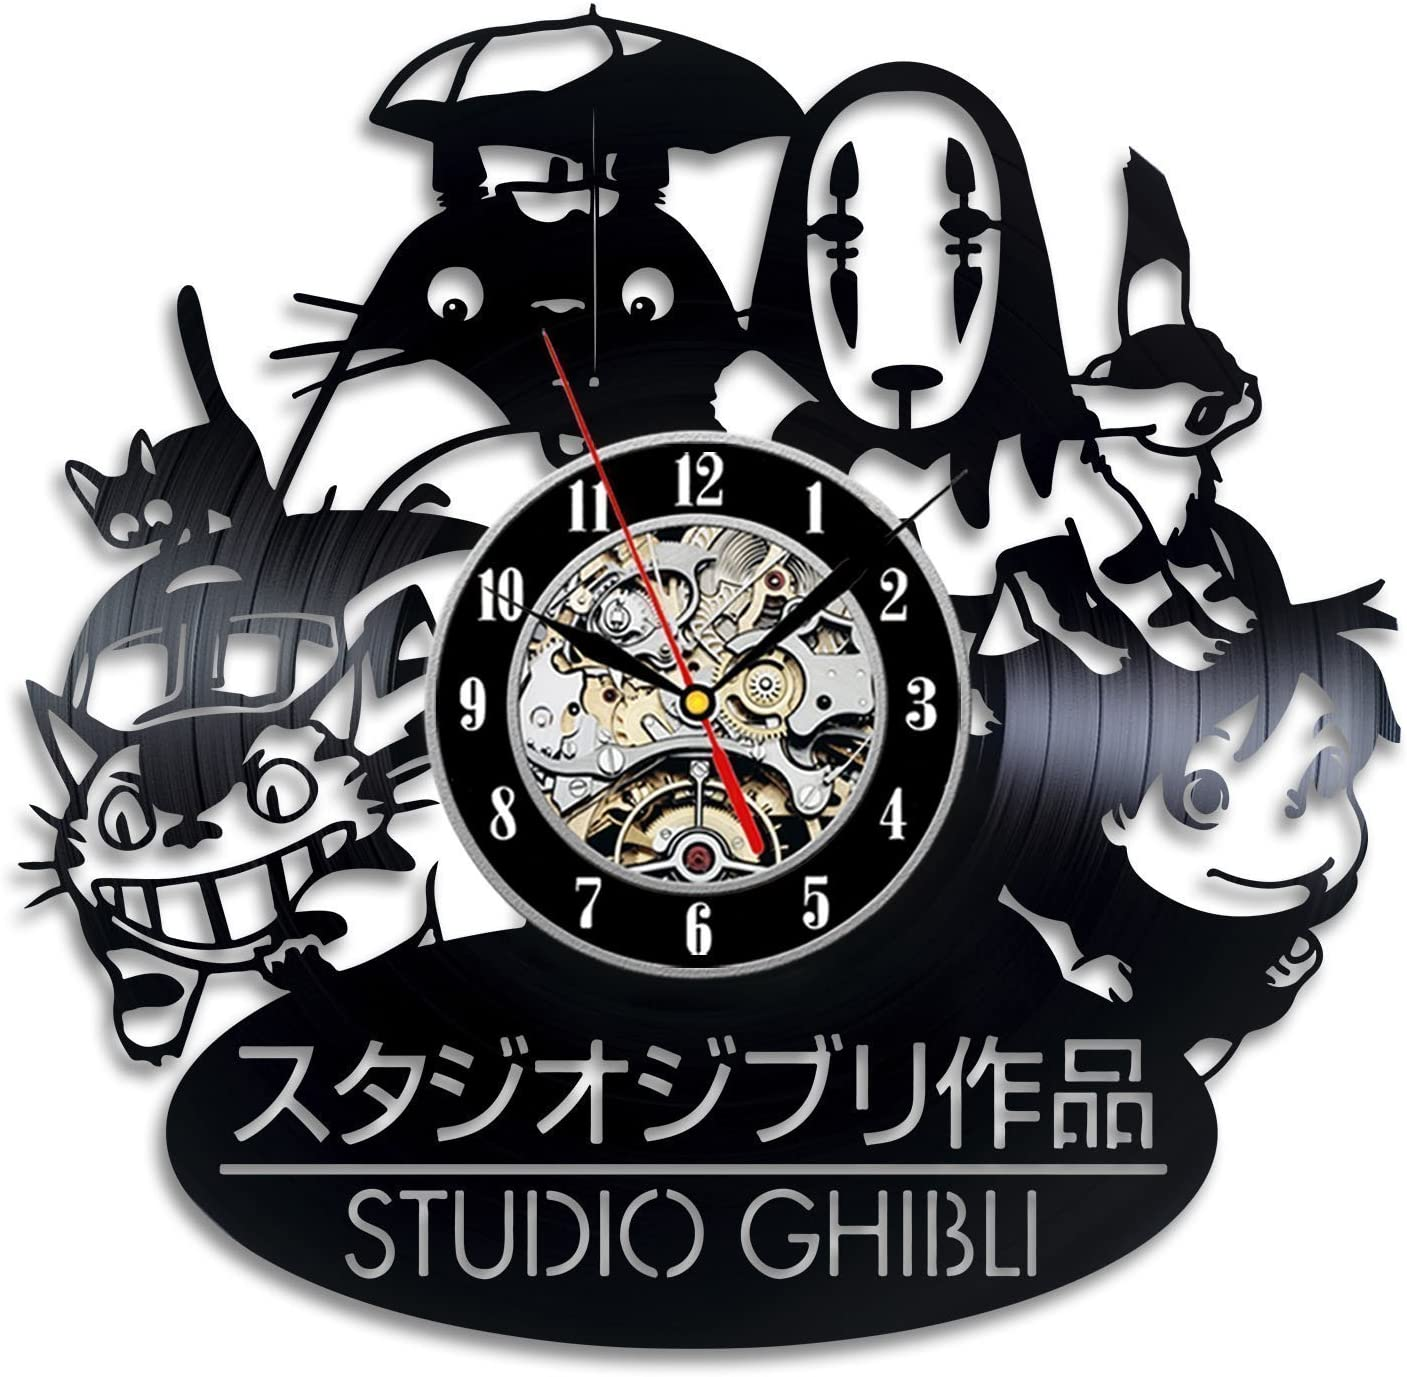 A picture of Gullei.com Ghibli Studio Japanese Cartoon Vintage Vinyl Wall Clock to better elaborate Cartoon Clocks: some of the most intriguing 2020